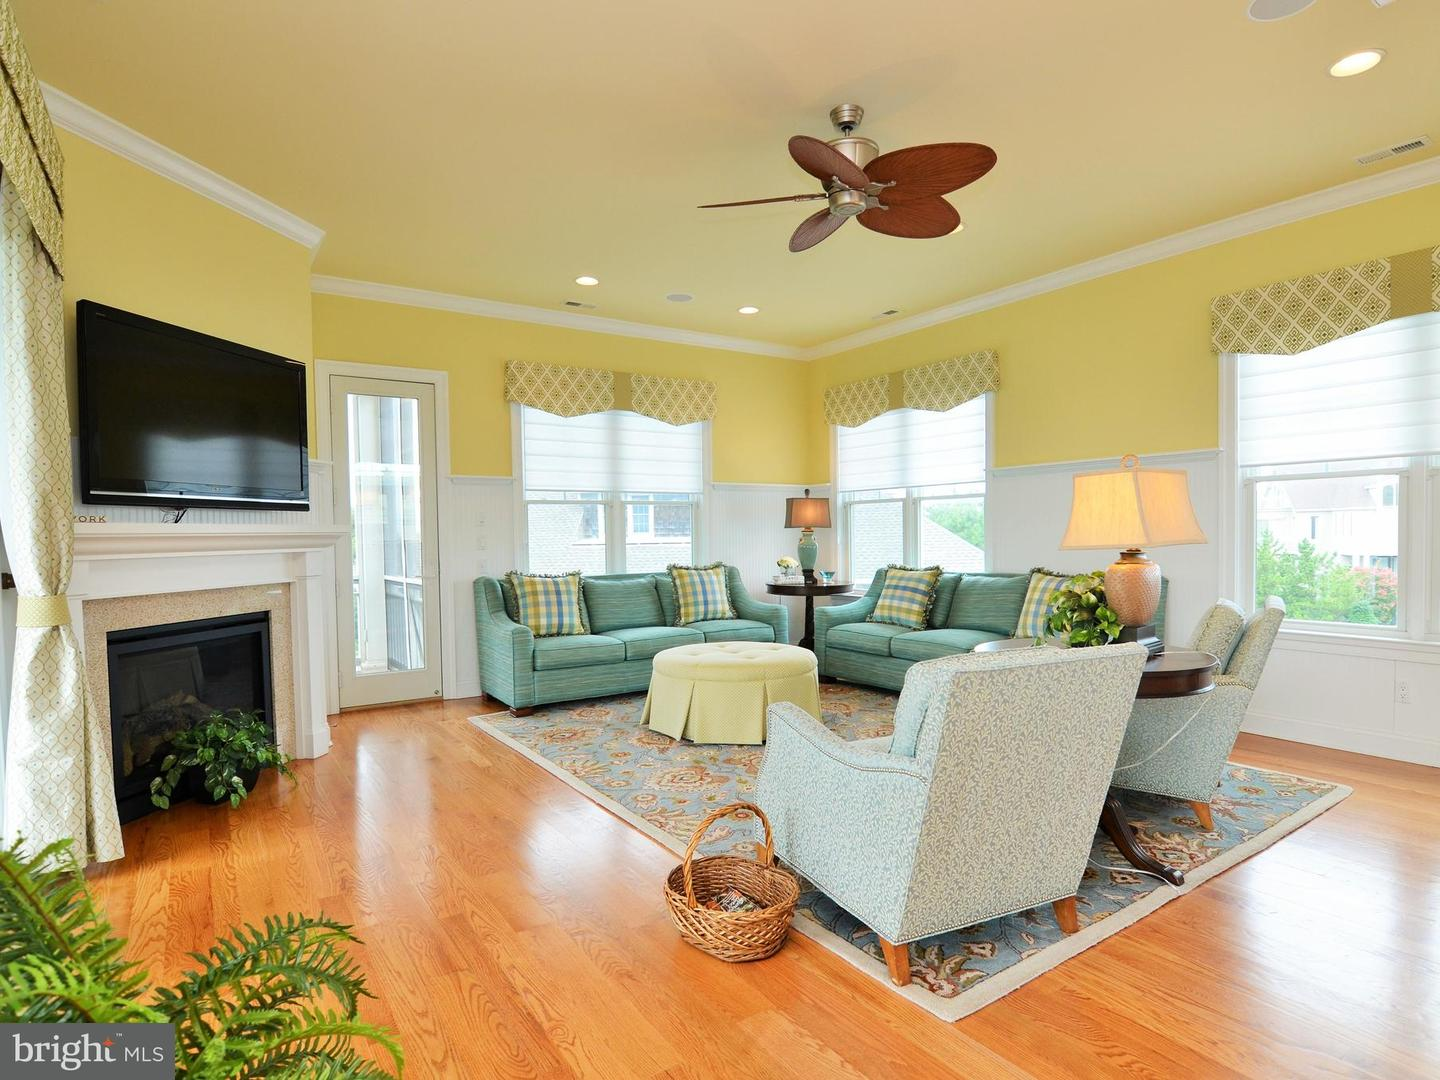 1002293530-300500811025-2018-09-25-15-08-25 31 Hall Ave | Rehoboth Beach, DE Real Estate For Sale | MLS# 1002293530  - 1st Choice Properties